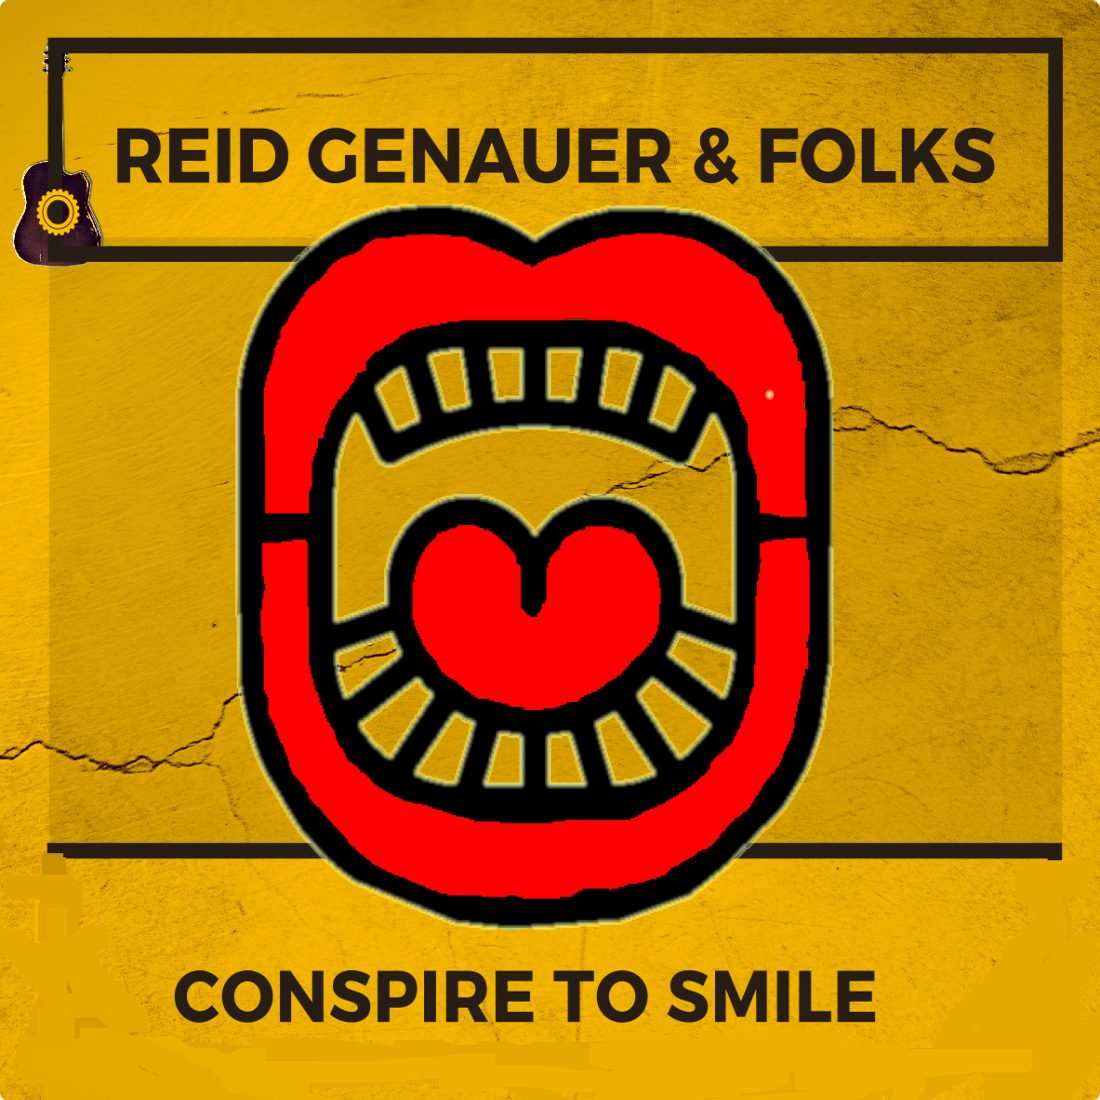 "Reid Genauer & Folks ""Conspire To Smile"". Announce upcoming album, social media thought experiment and Kickstarter beginning Feb 1 2018"